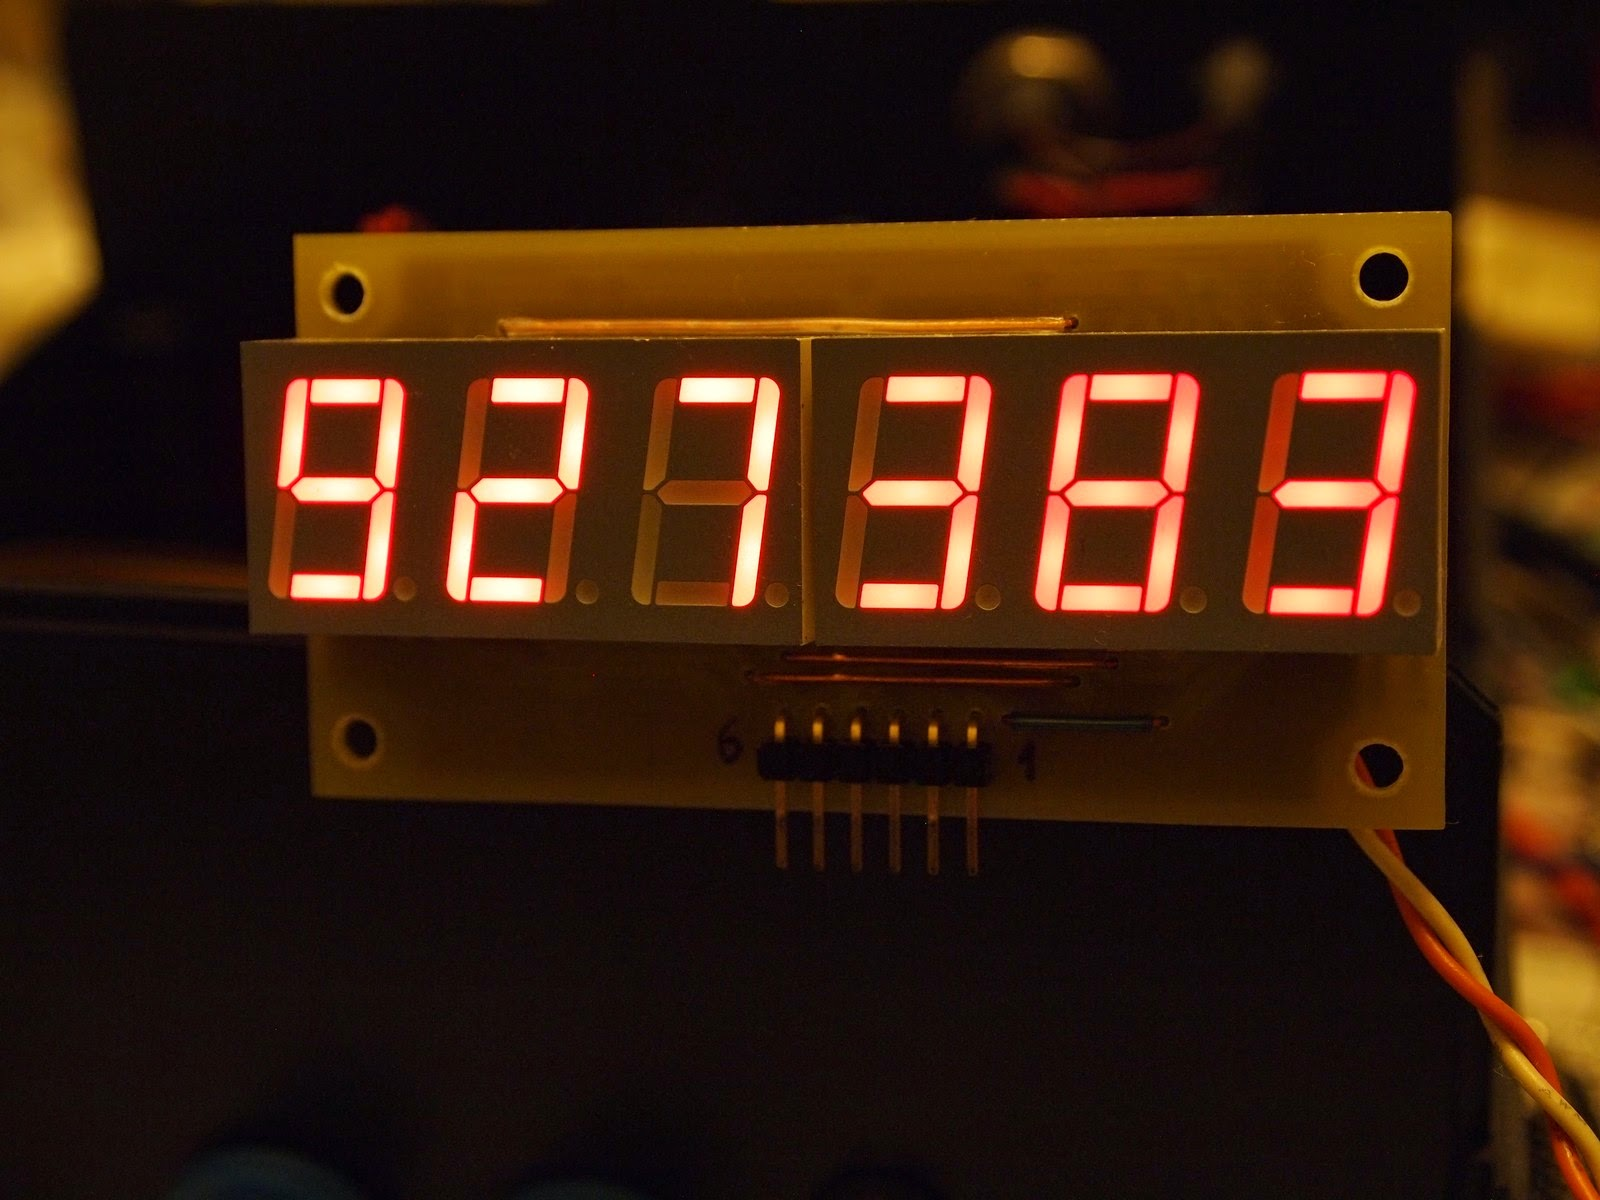 Frequency Counter With Pic16f628a Electronics Lab Is The Circuit Diagram Of A Seven Segment Based On Freqc 16f628a3